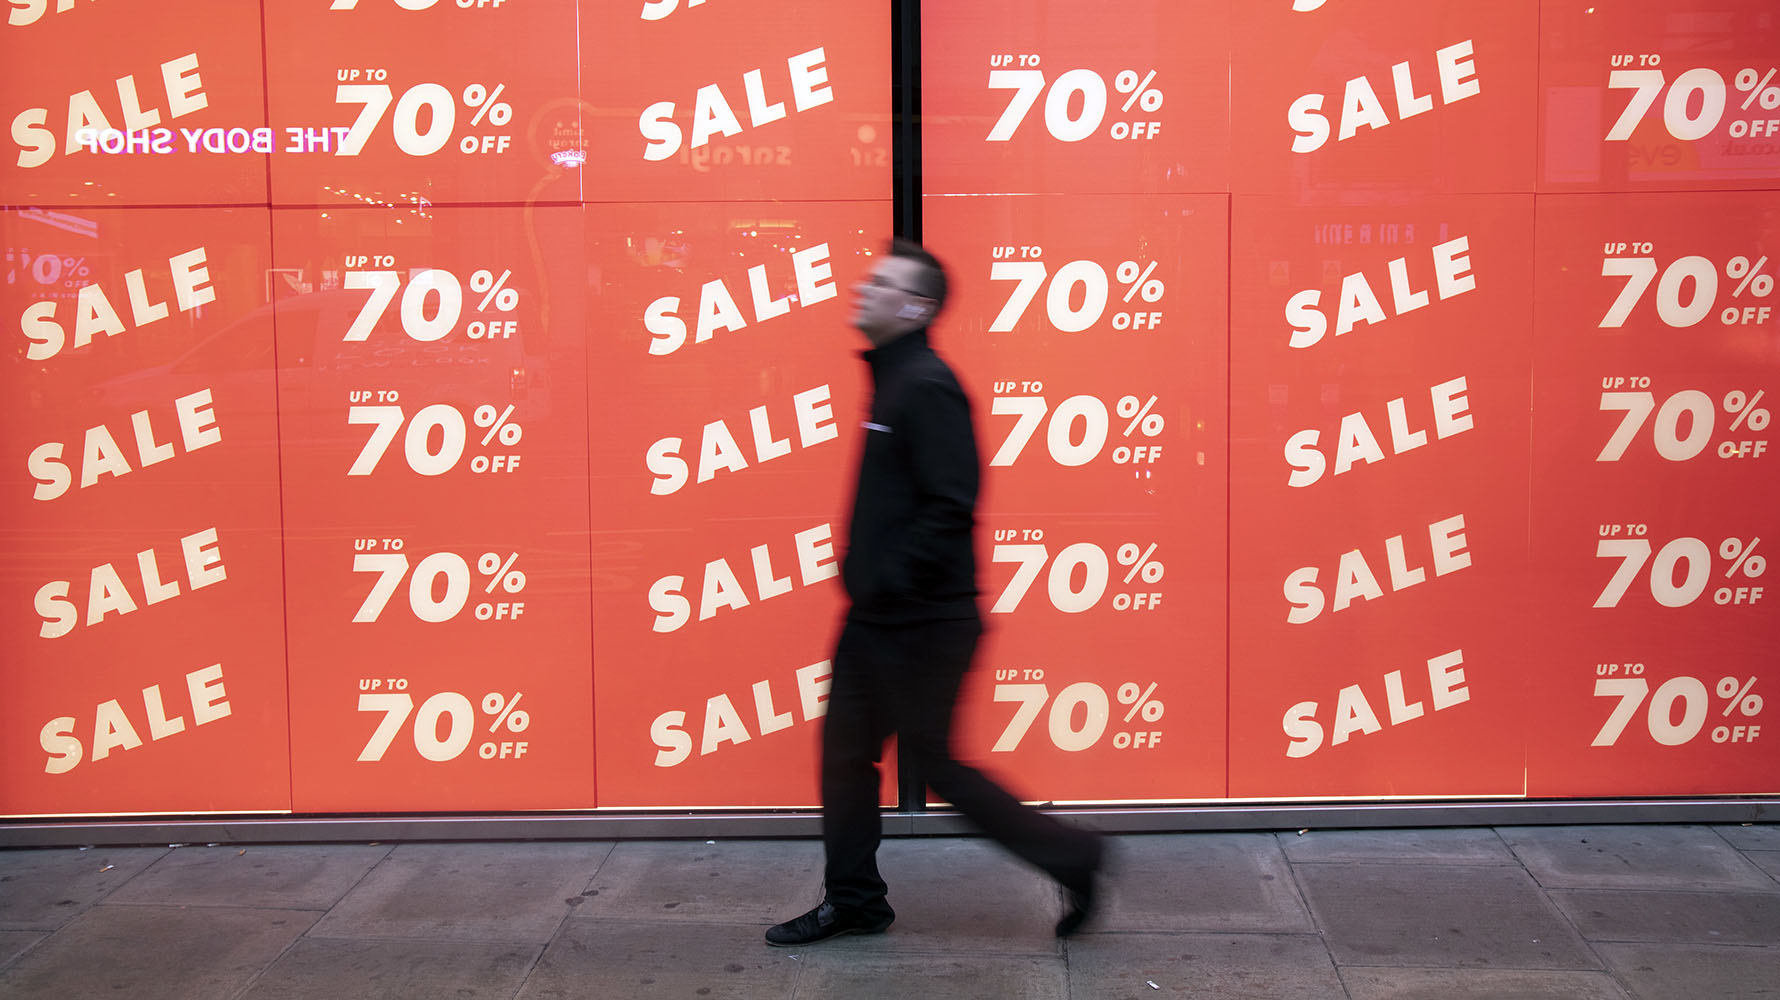 People out shopping on Oxford Street walk past large scale January sale signs in red and white for major high street clothing retail shops on 7th January 2019 in London, United Kingdom. Its time for the Winter sales, and most shops are advertising big reductions in prices. Bargains are available and the shopping streets are busy. Oxford Street is a major road in the West End of London. It is Europe's busiest shopping street, with around half a million daily visitors, and has approximately 300 shops.